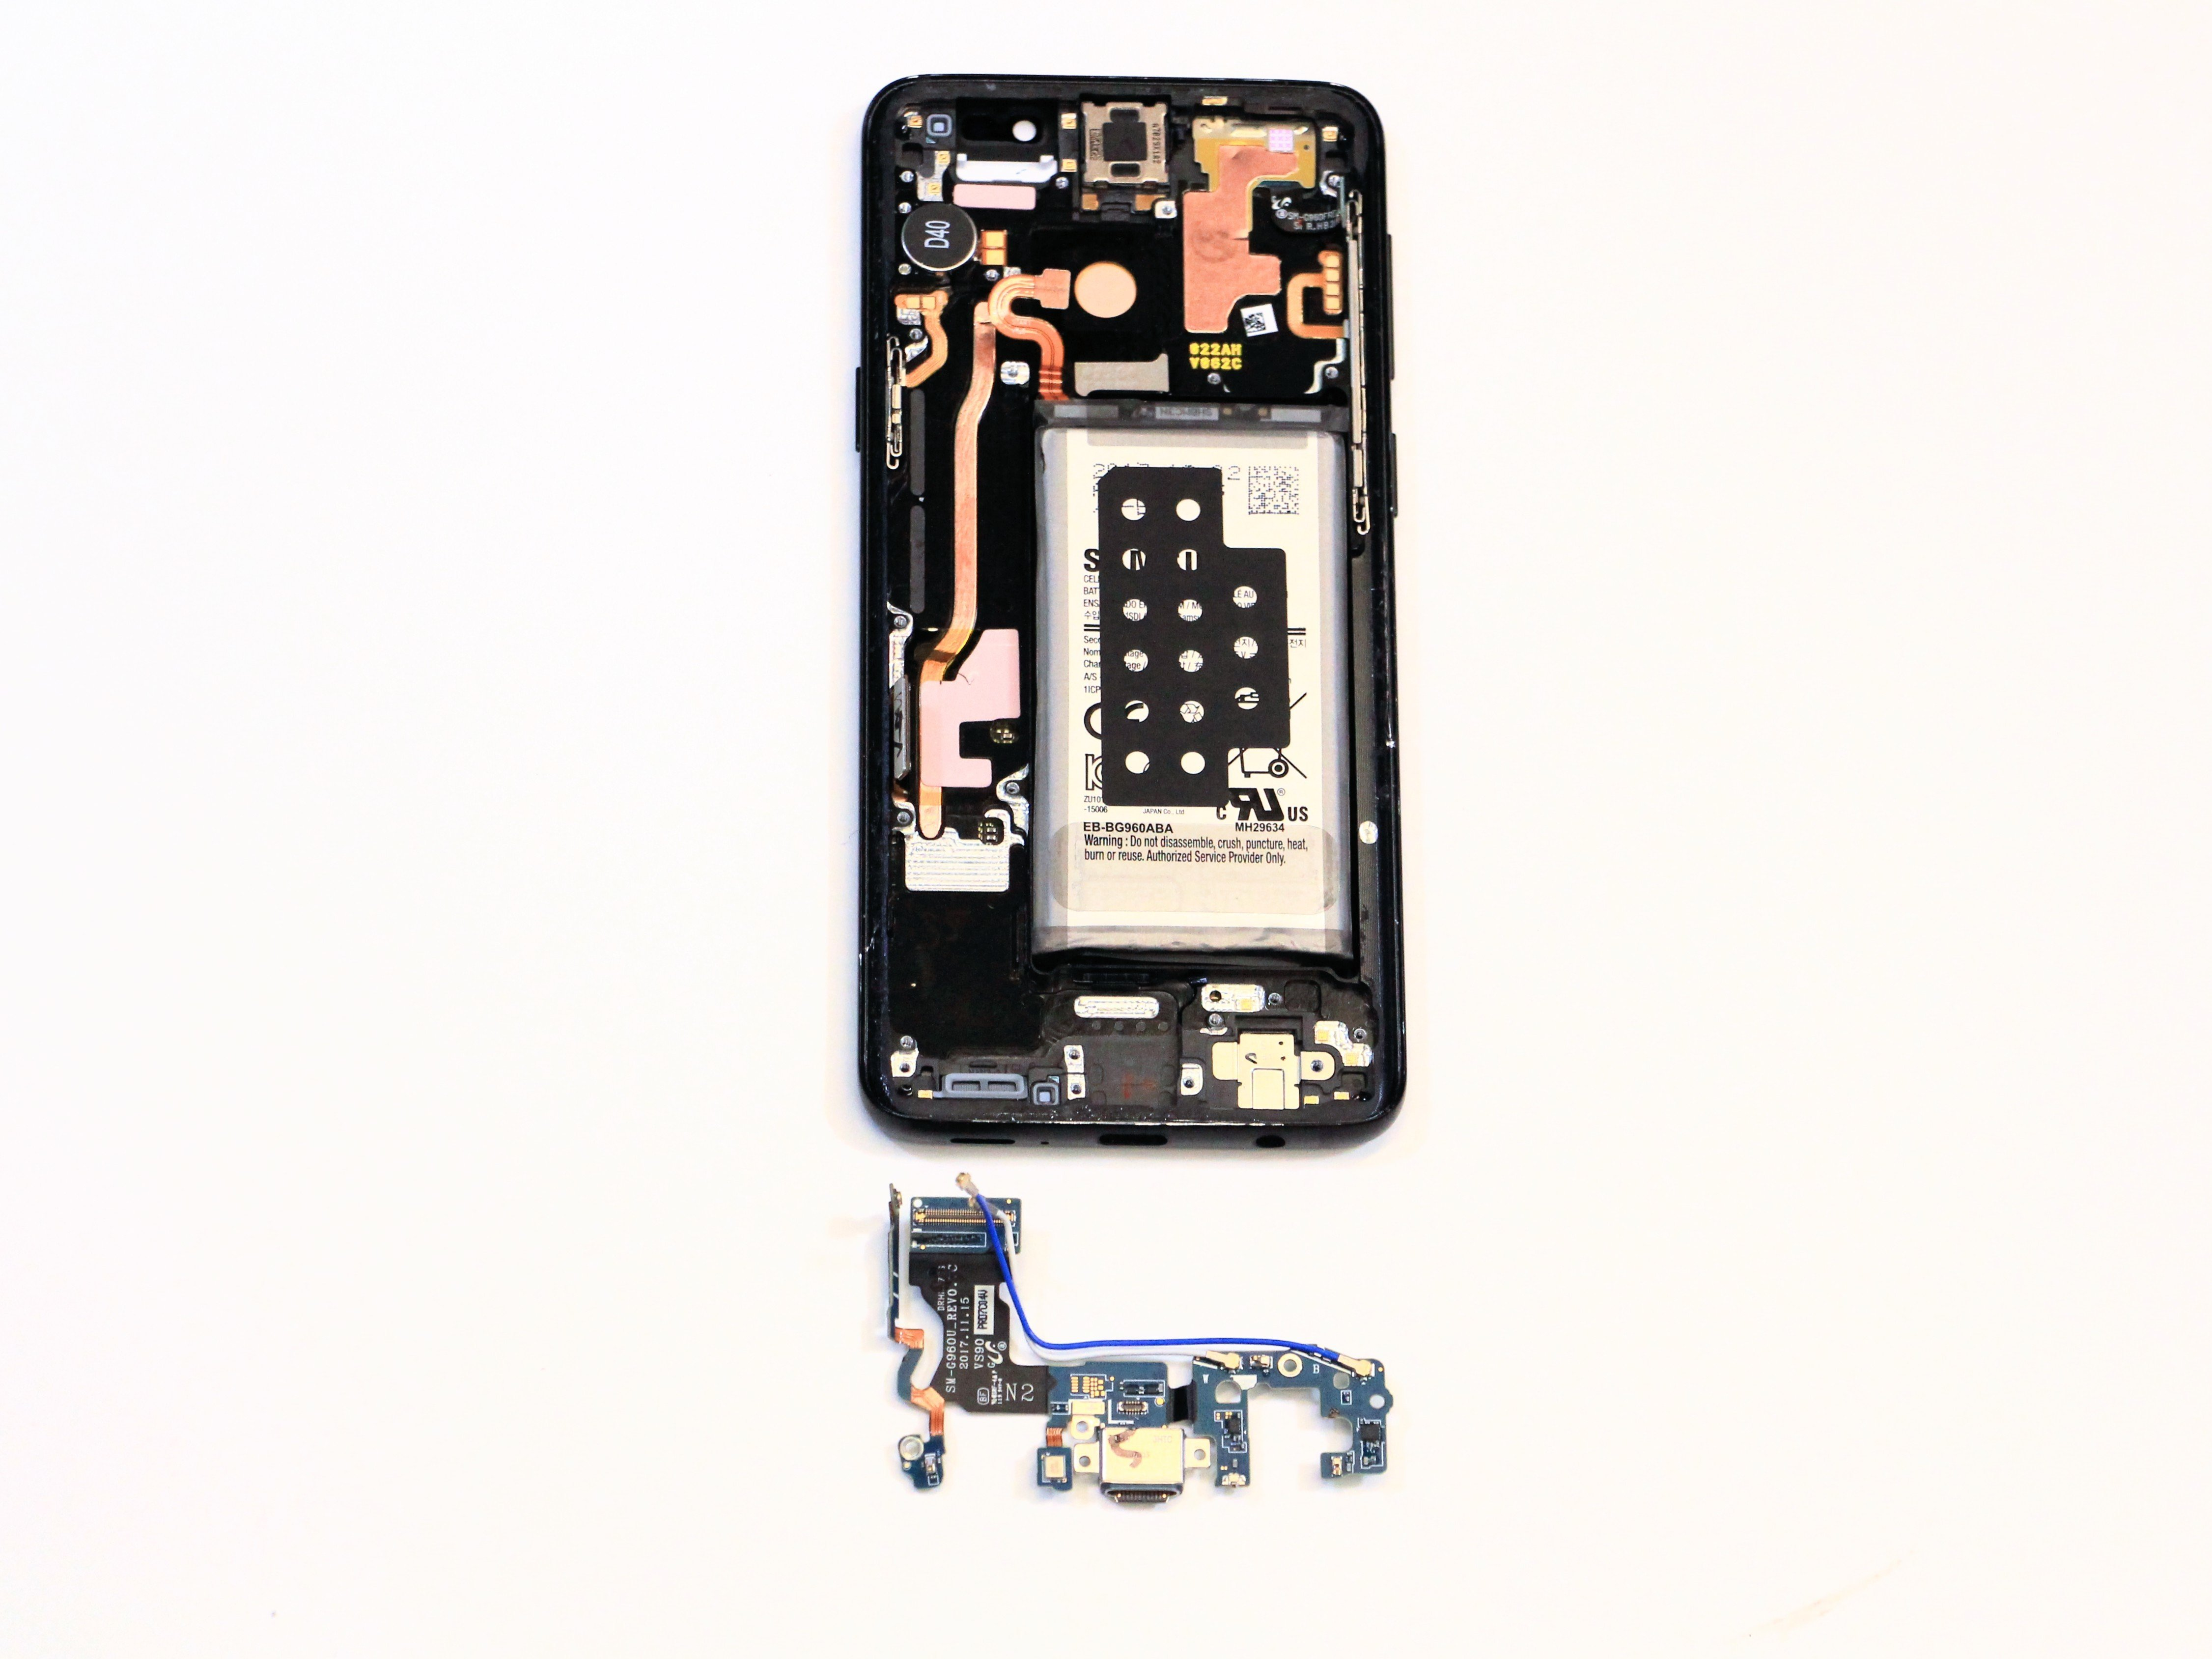 Samsung Galaxy S9 Charging Port Replacement - iFixit Repair